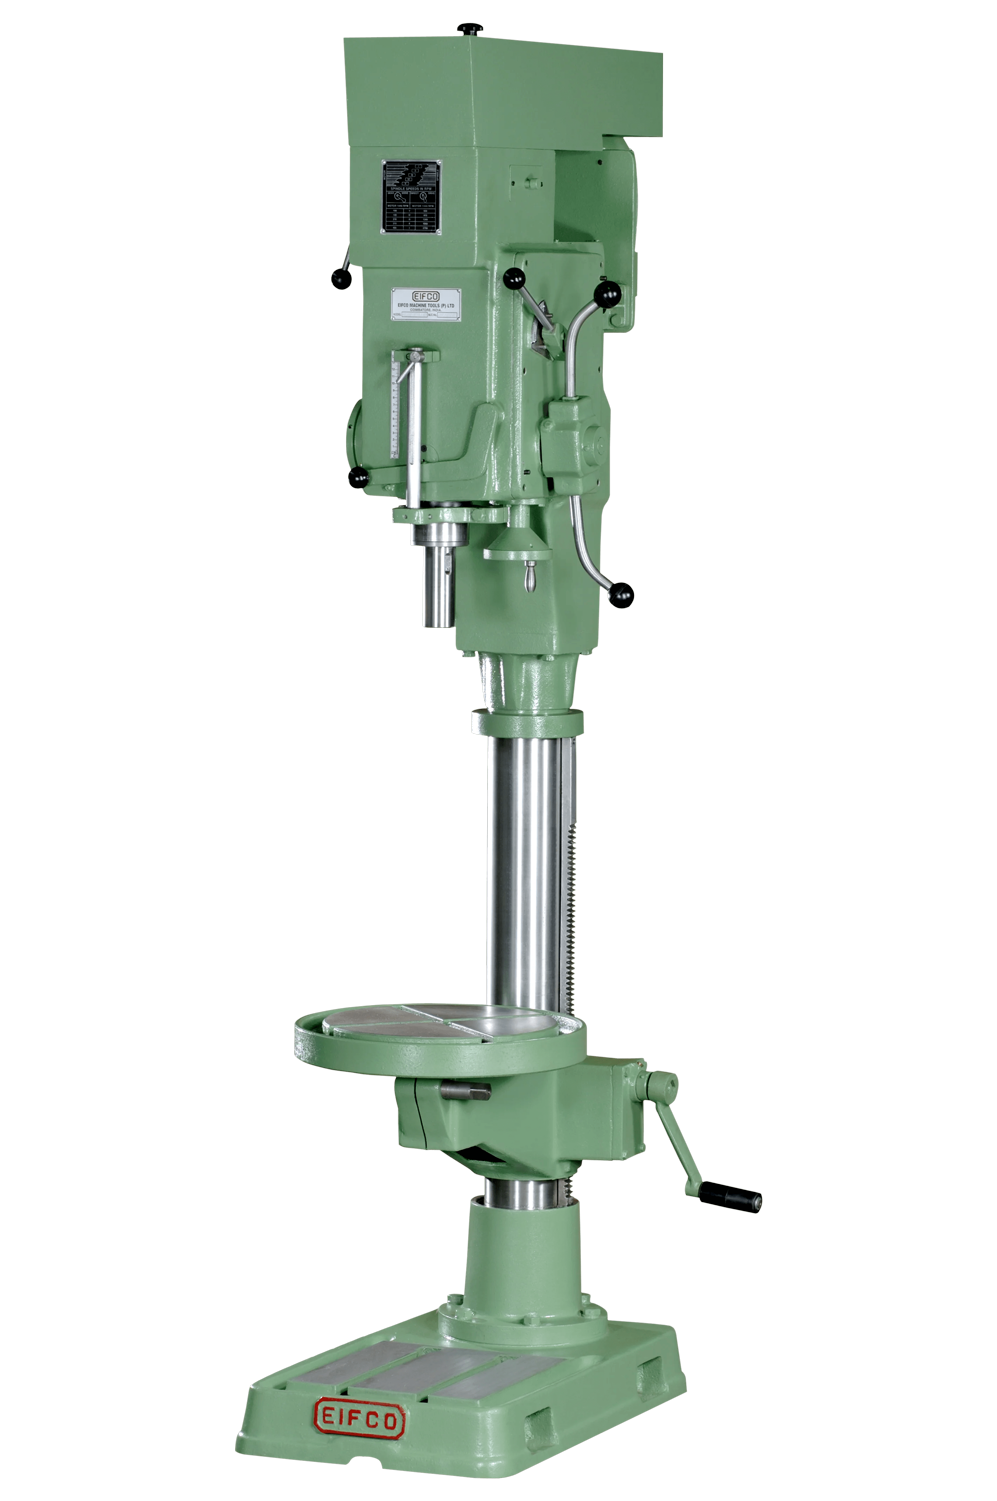 Eifco -Pillar Drilling Machine (Heavy Duty) - Auto Feed 25mm